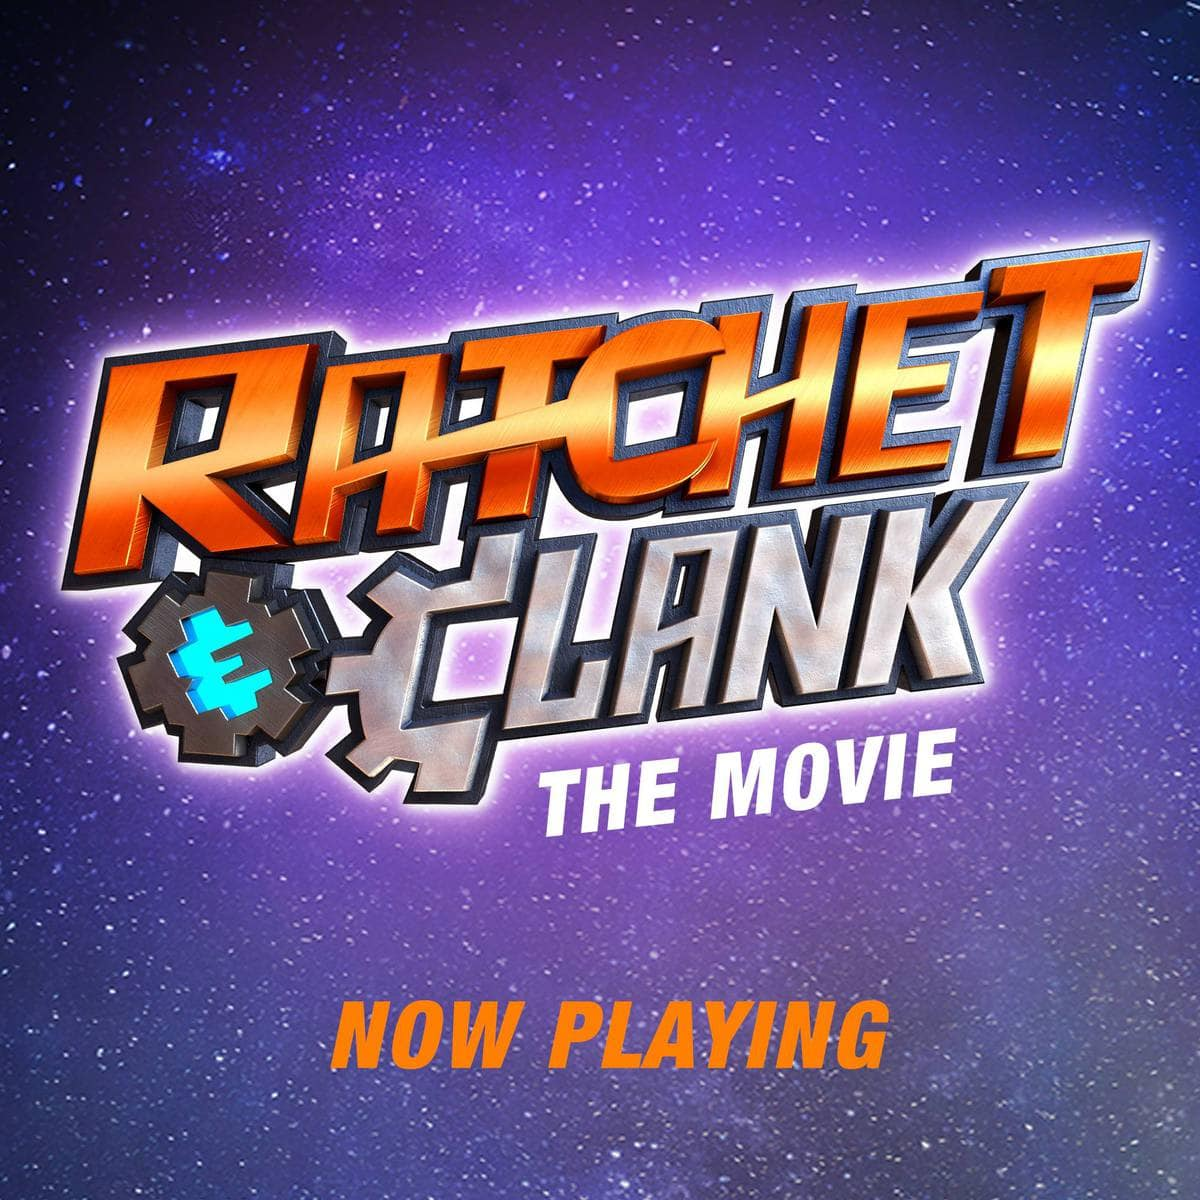 You won't want to miss Ratchet and Clank, starring big names like John Goodman as Grimroth, Paul Giamatti as Drek, David Kaye as Clank, Sylvestor Stallone as Victor, James Arnold Taylor as Ratchet, and Bella Thorne as Cora.